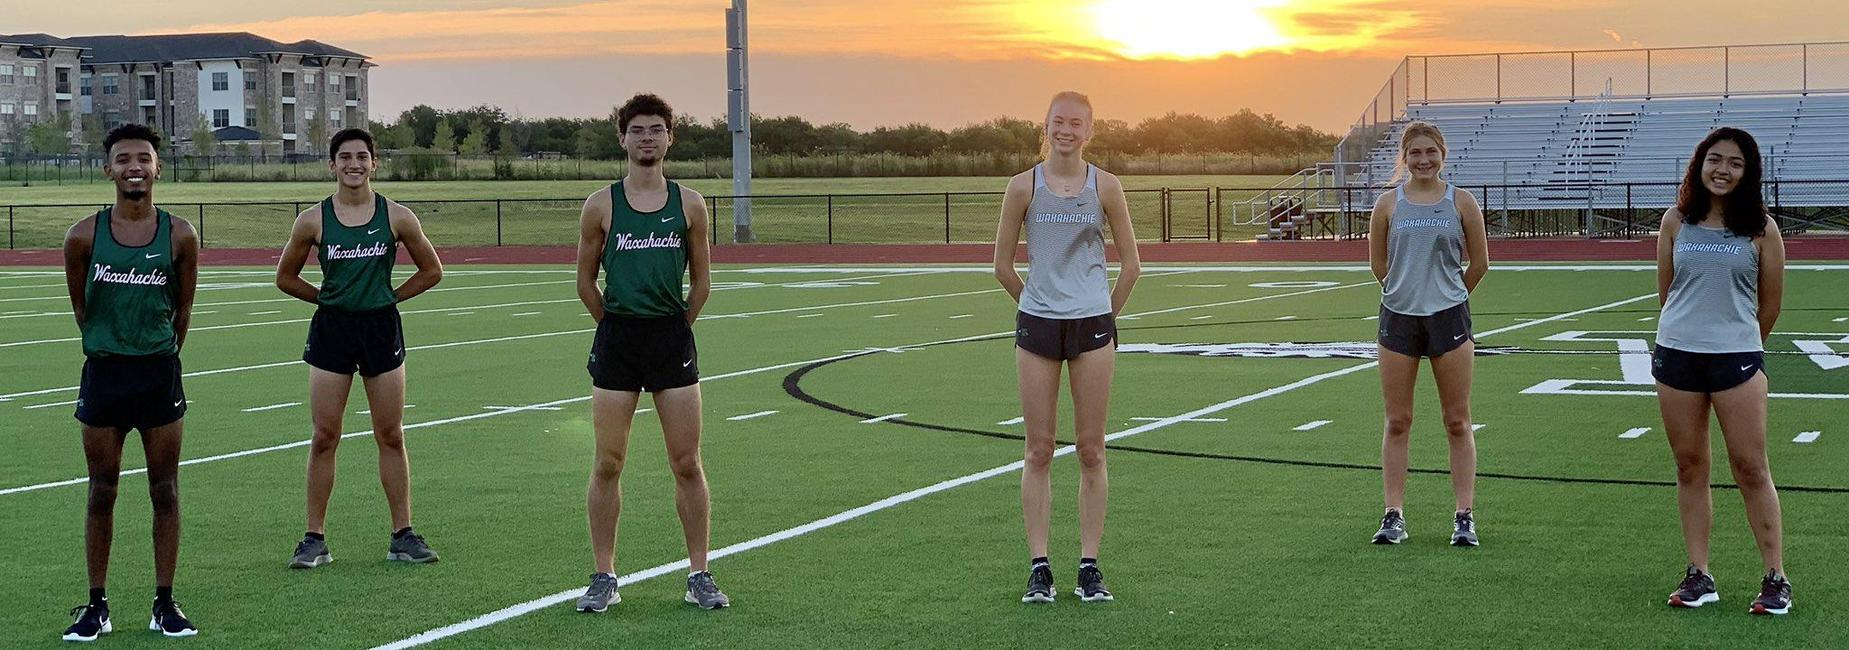 3 boys & 3 girls cross country athletes on the field at sunrise